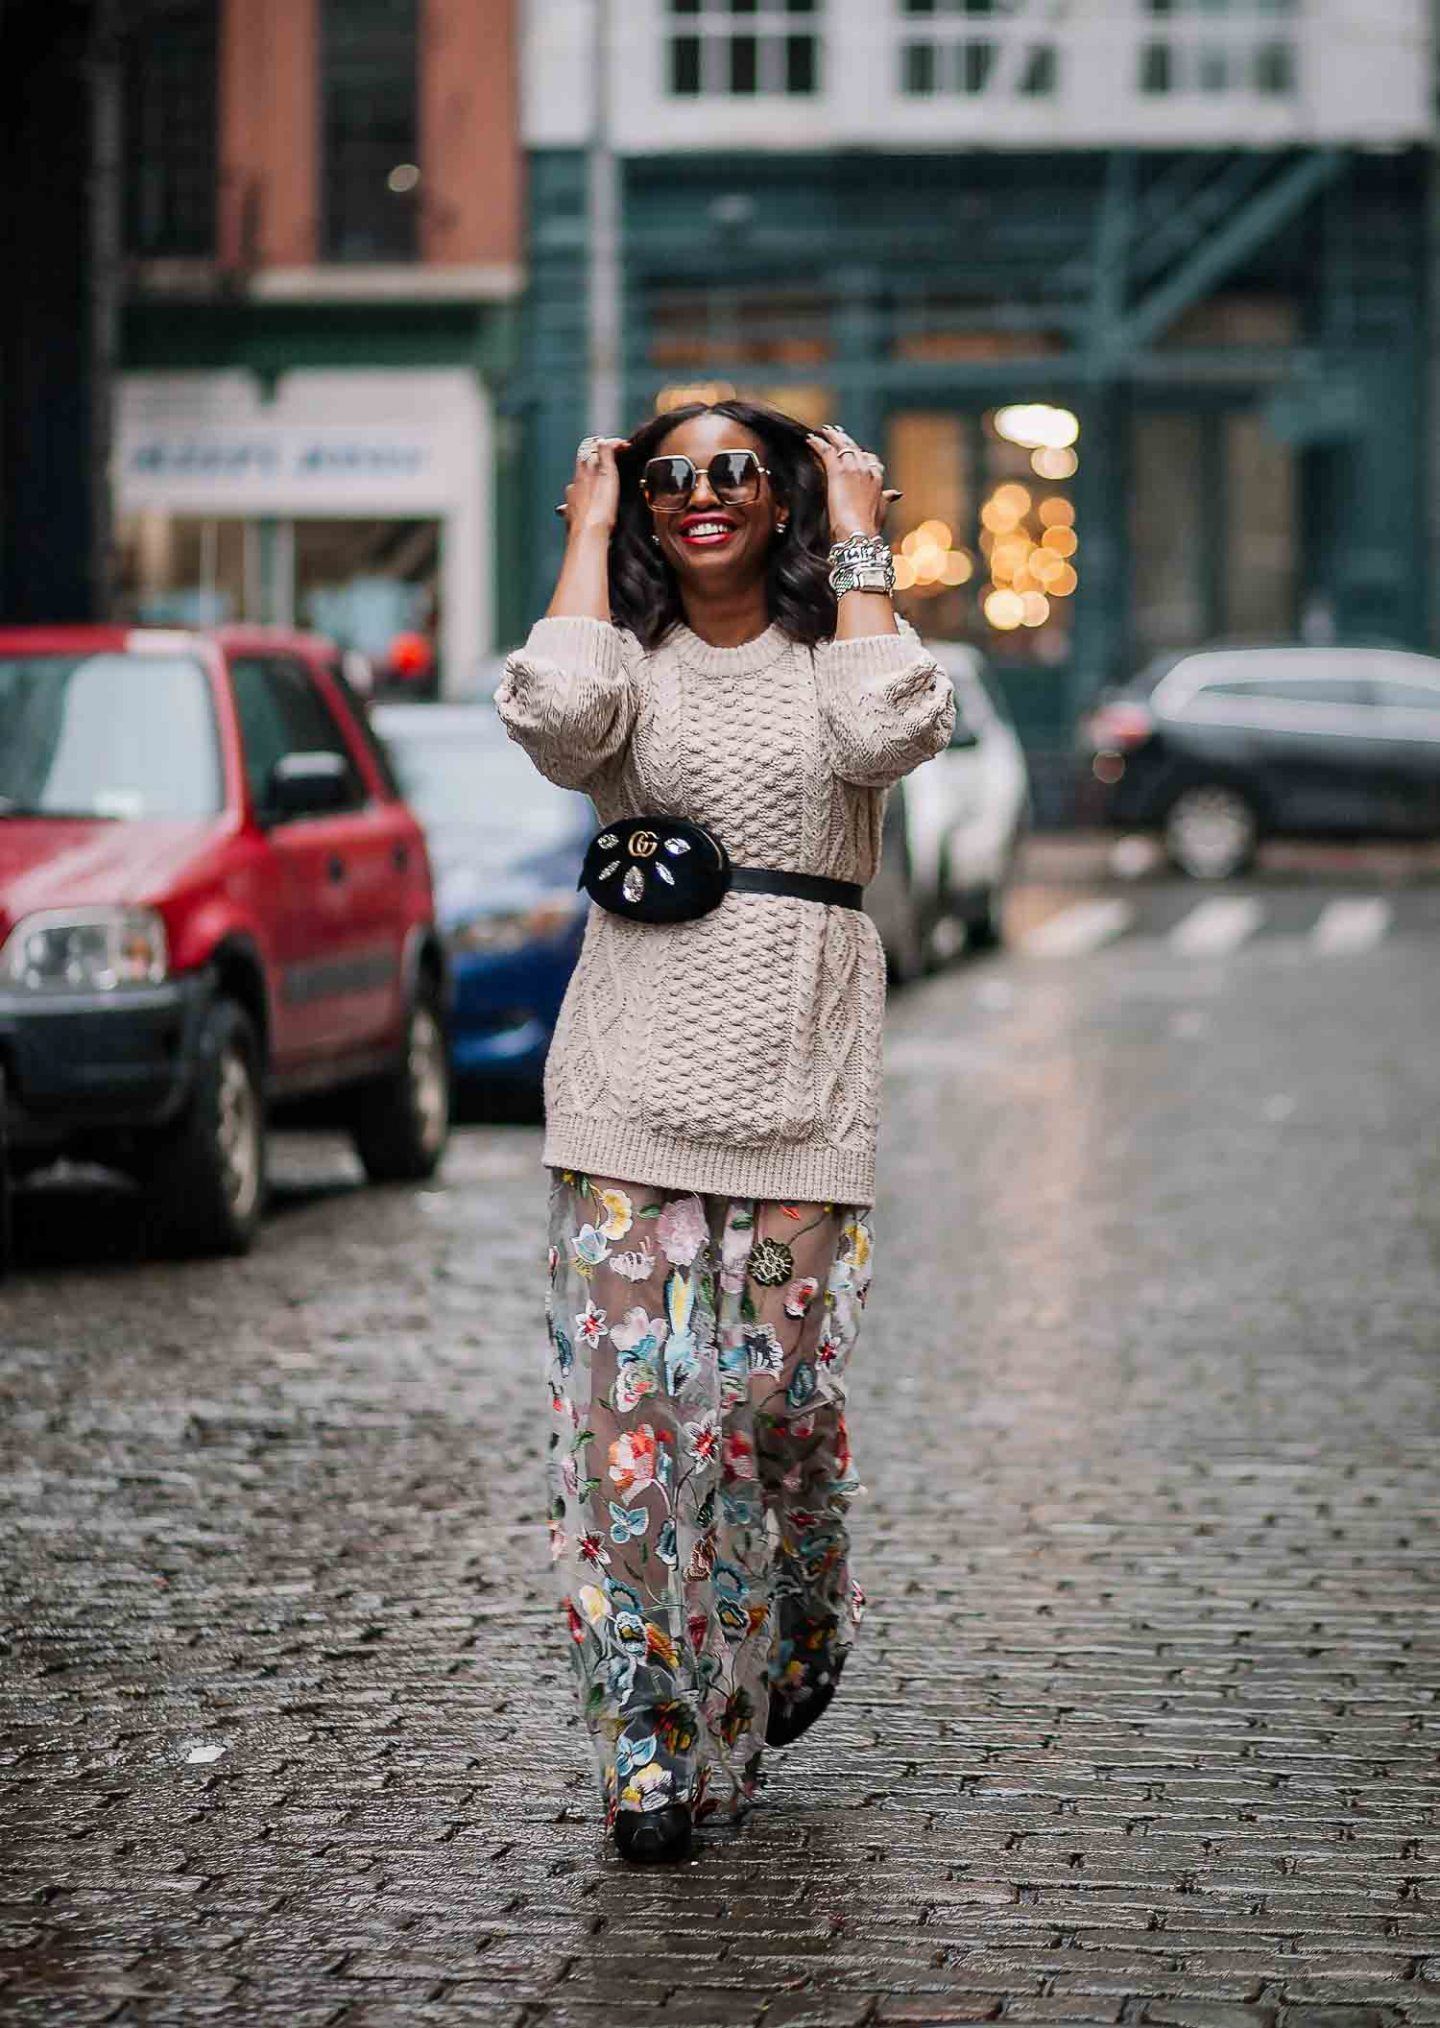 CAUGHT IN THE RAIN IN A CHUNKY SWEATER AND FLORAL DRESS